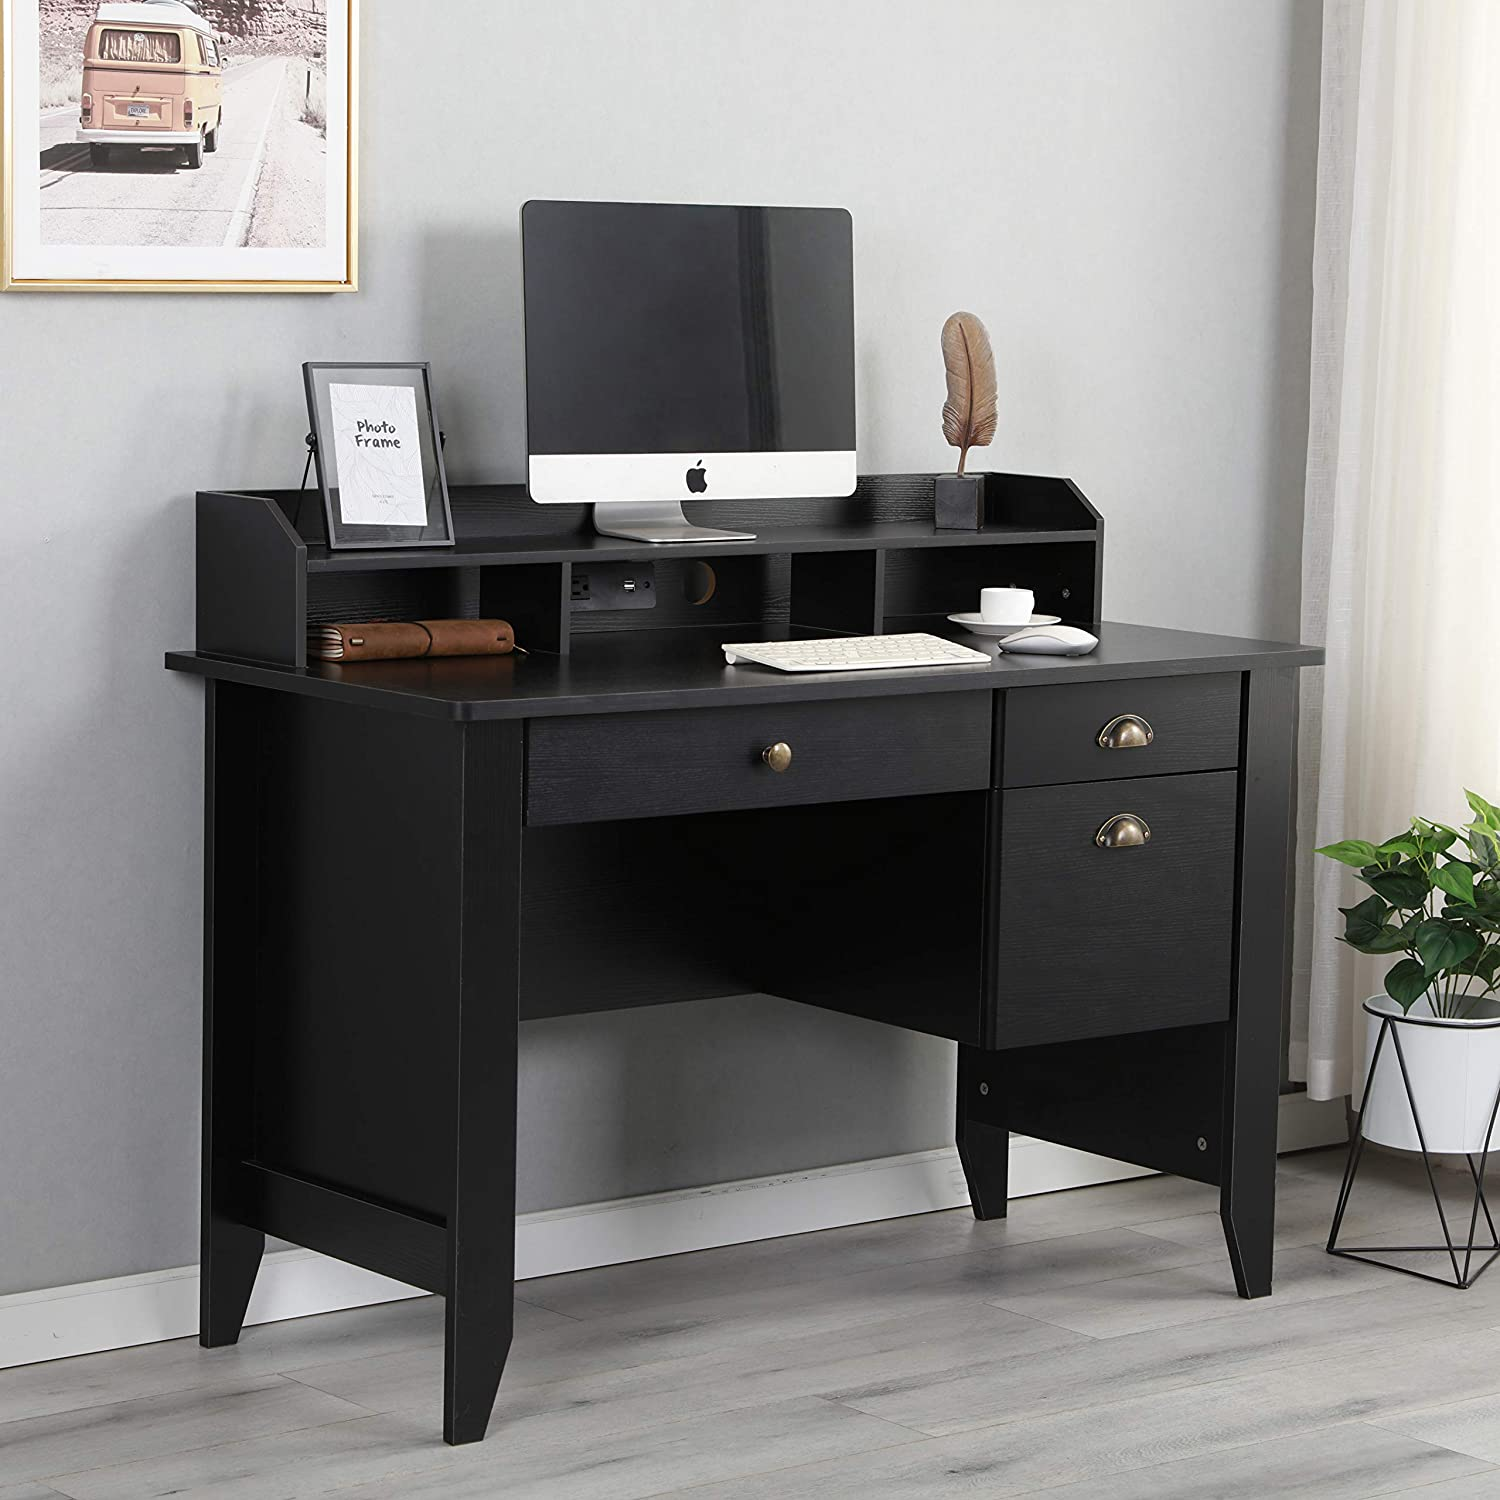 Amazon com executive desk 47 office desk pc laptop home office study writing table with usb and charger hubblack kitchen dining